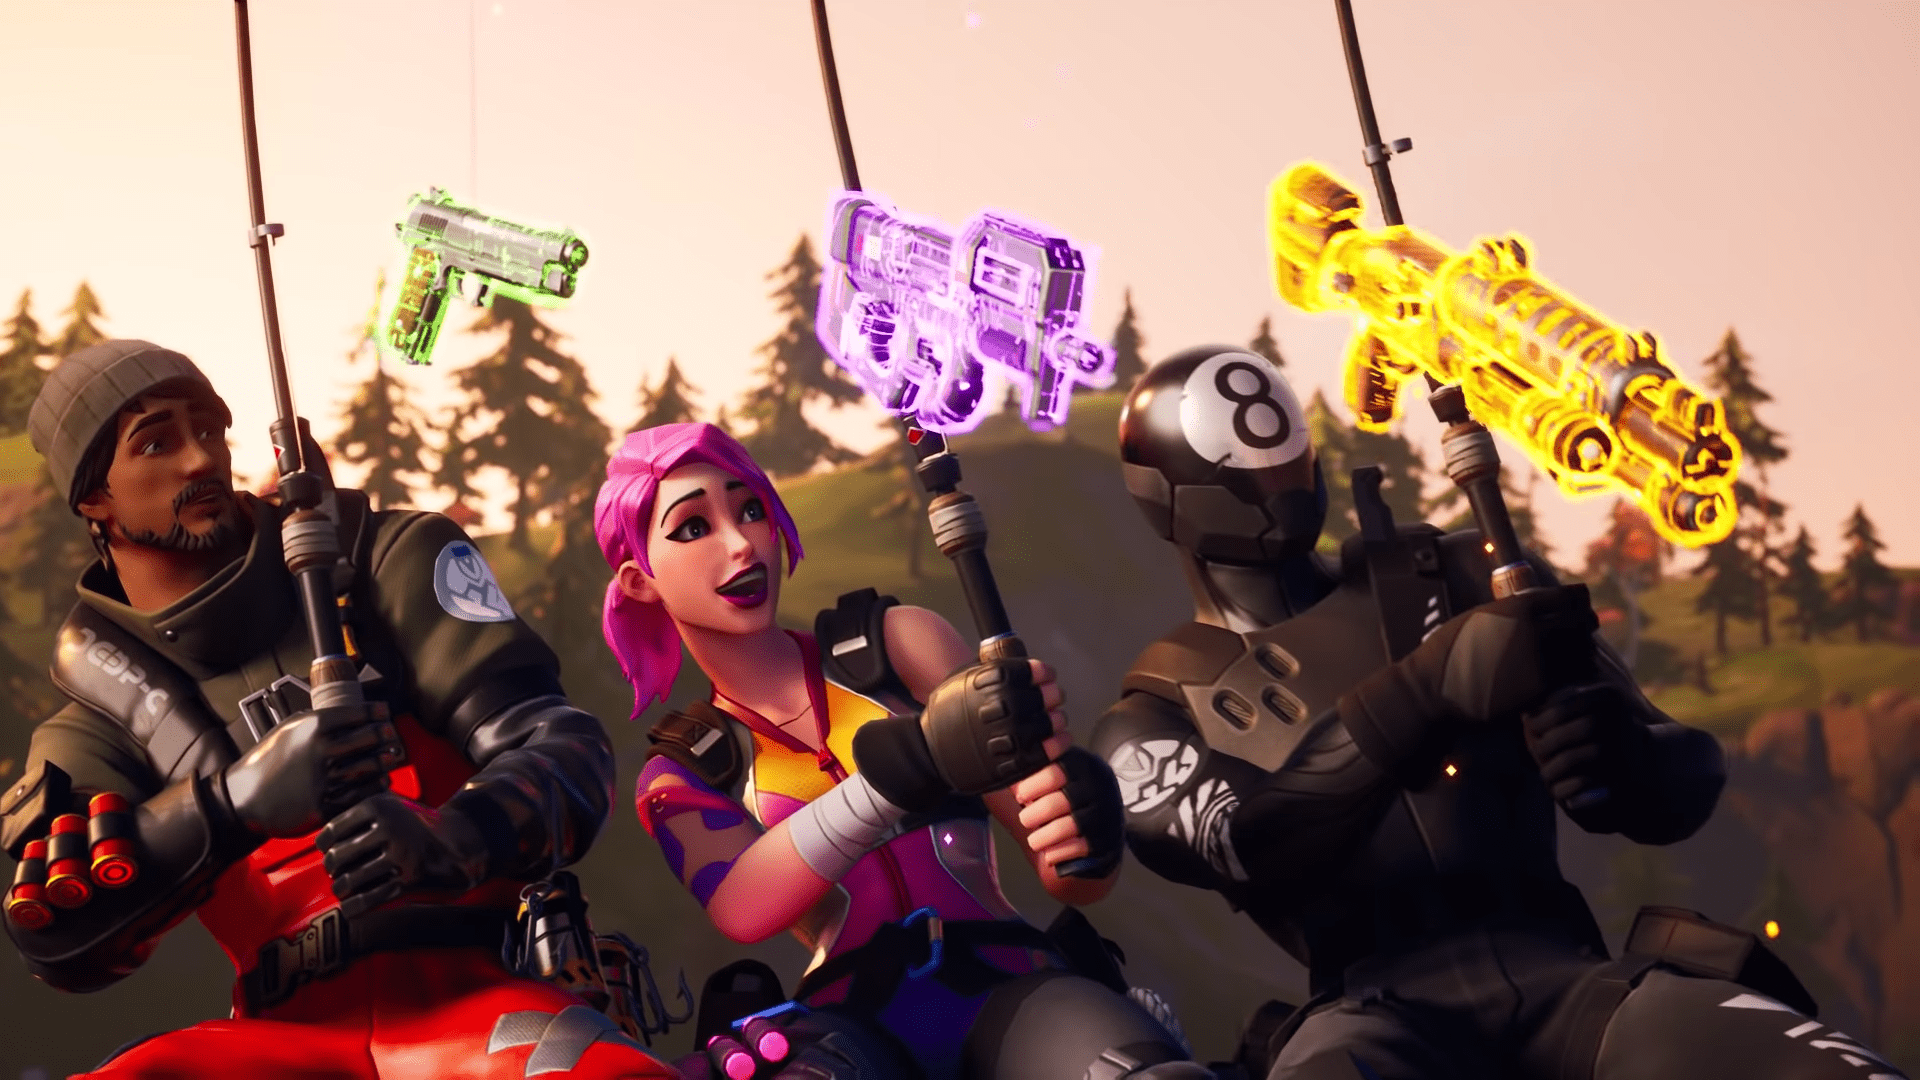 Fortnite Update V11.31 Announced With Patch Notes Updated, Winterfest Highly Expected